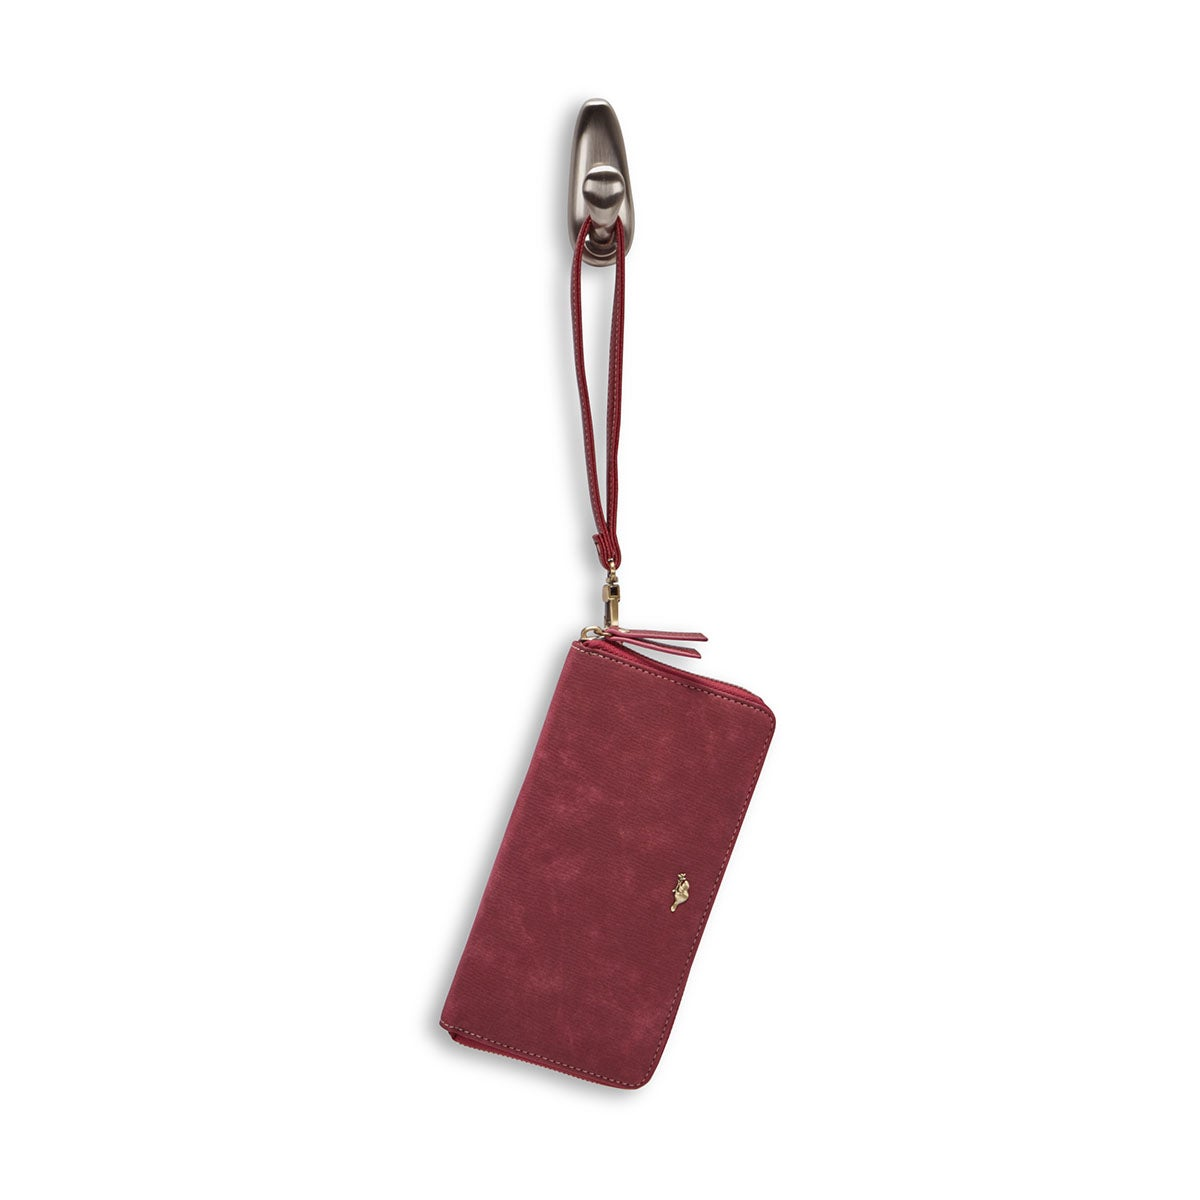 Lds Frost Collection berry wristlet